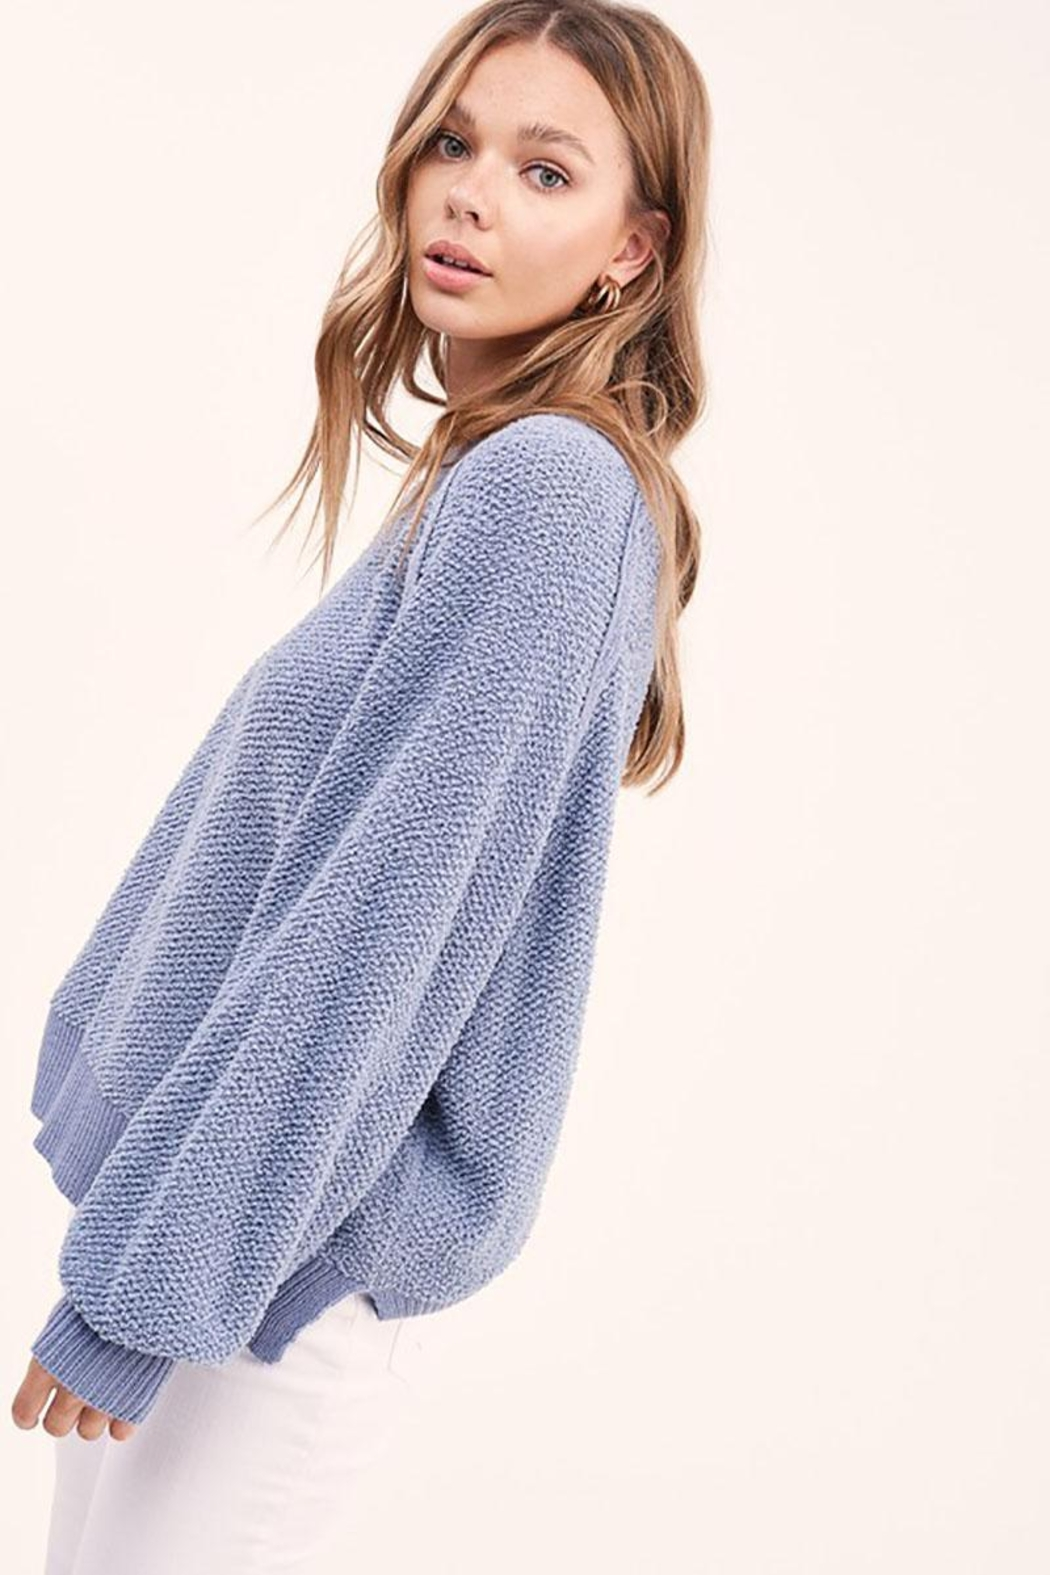 Mint Cloud Boutique Lightweight Knit Pullover Sweater Top - Side Cropped Image